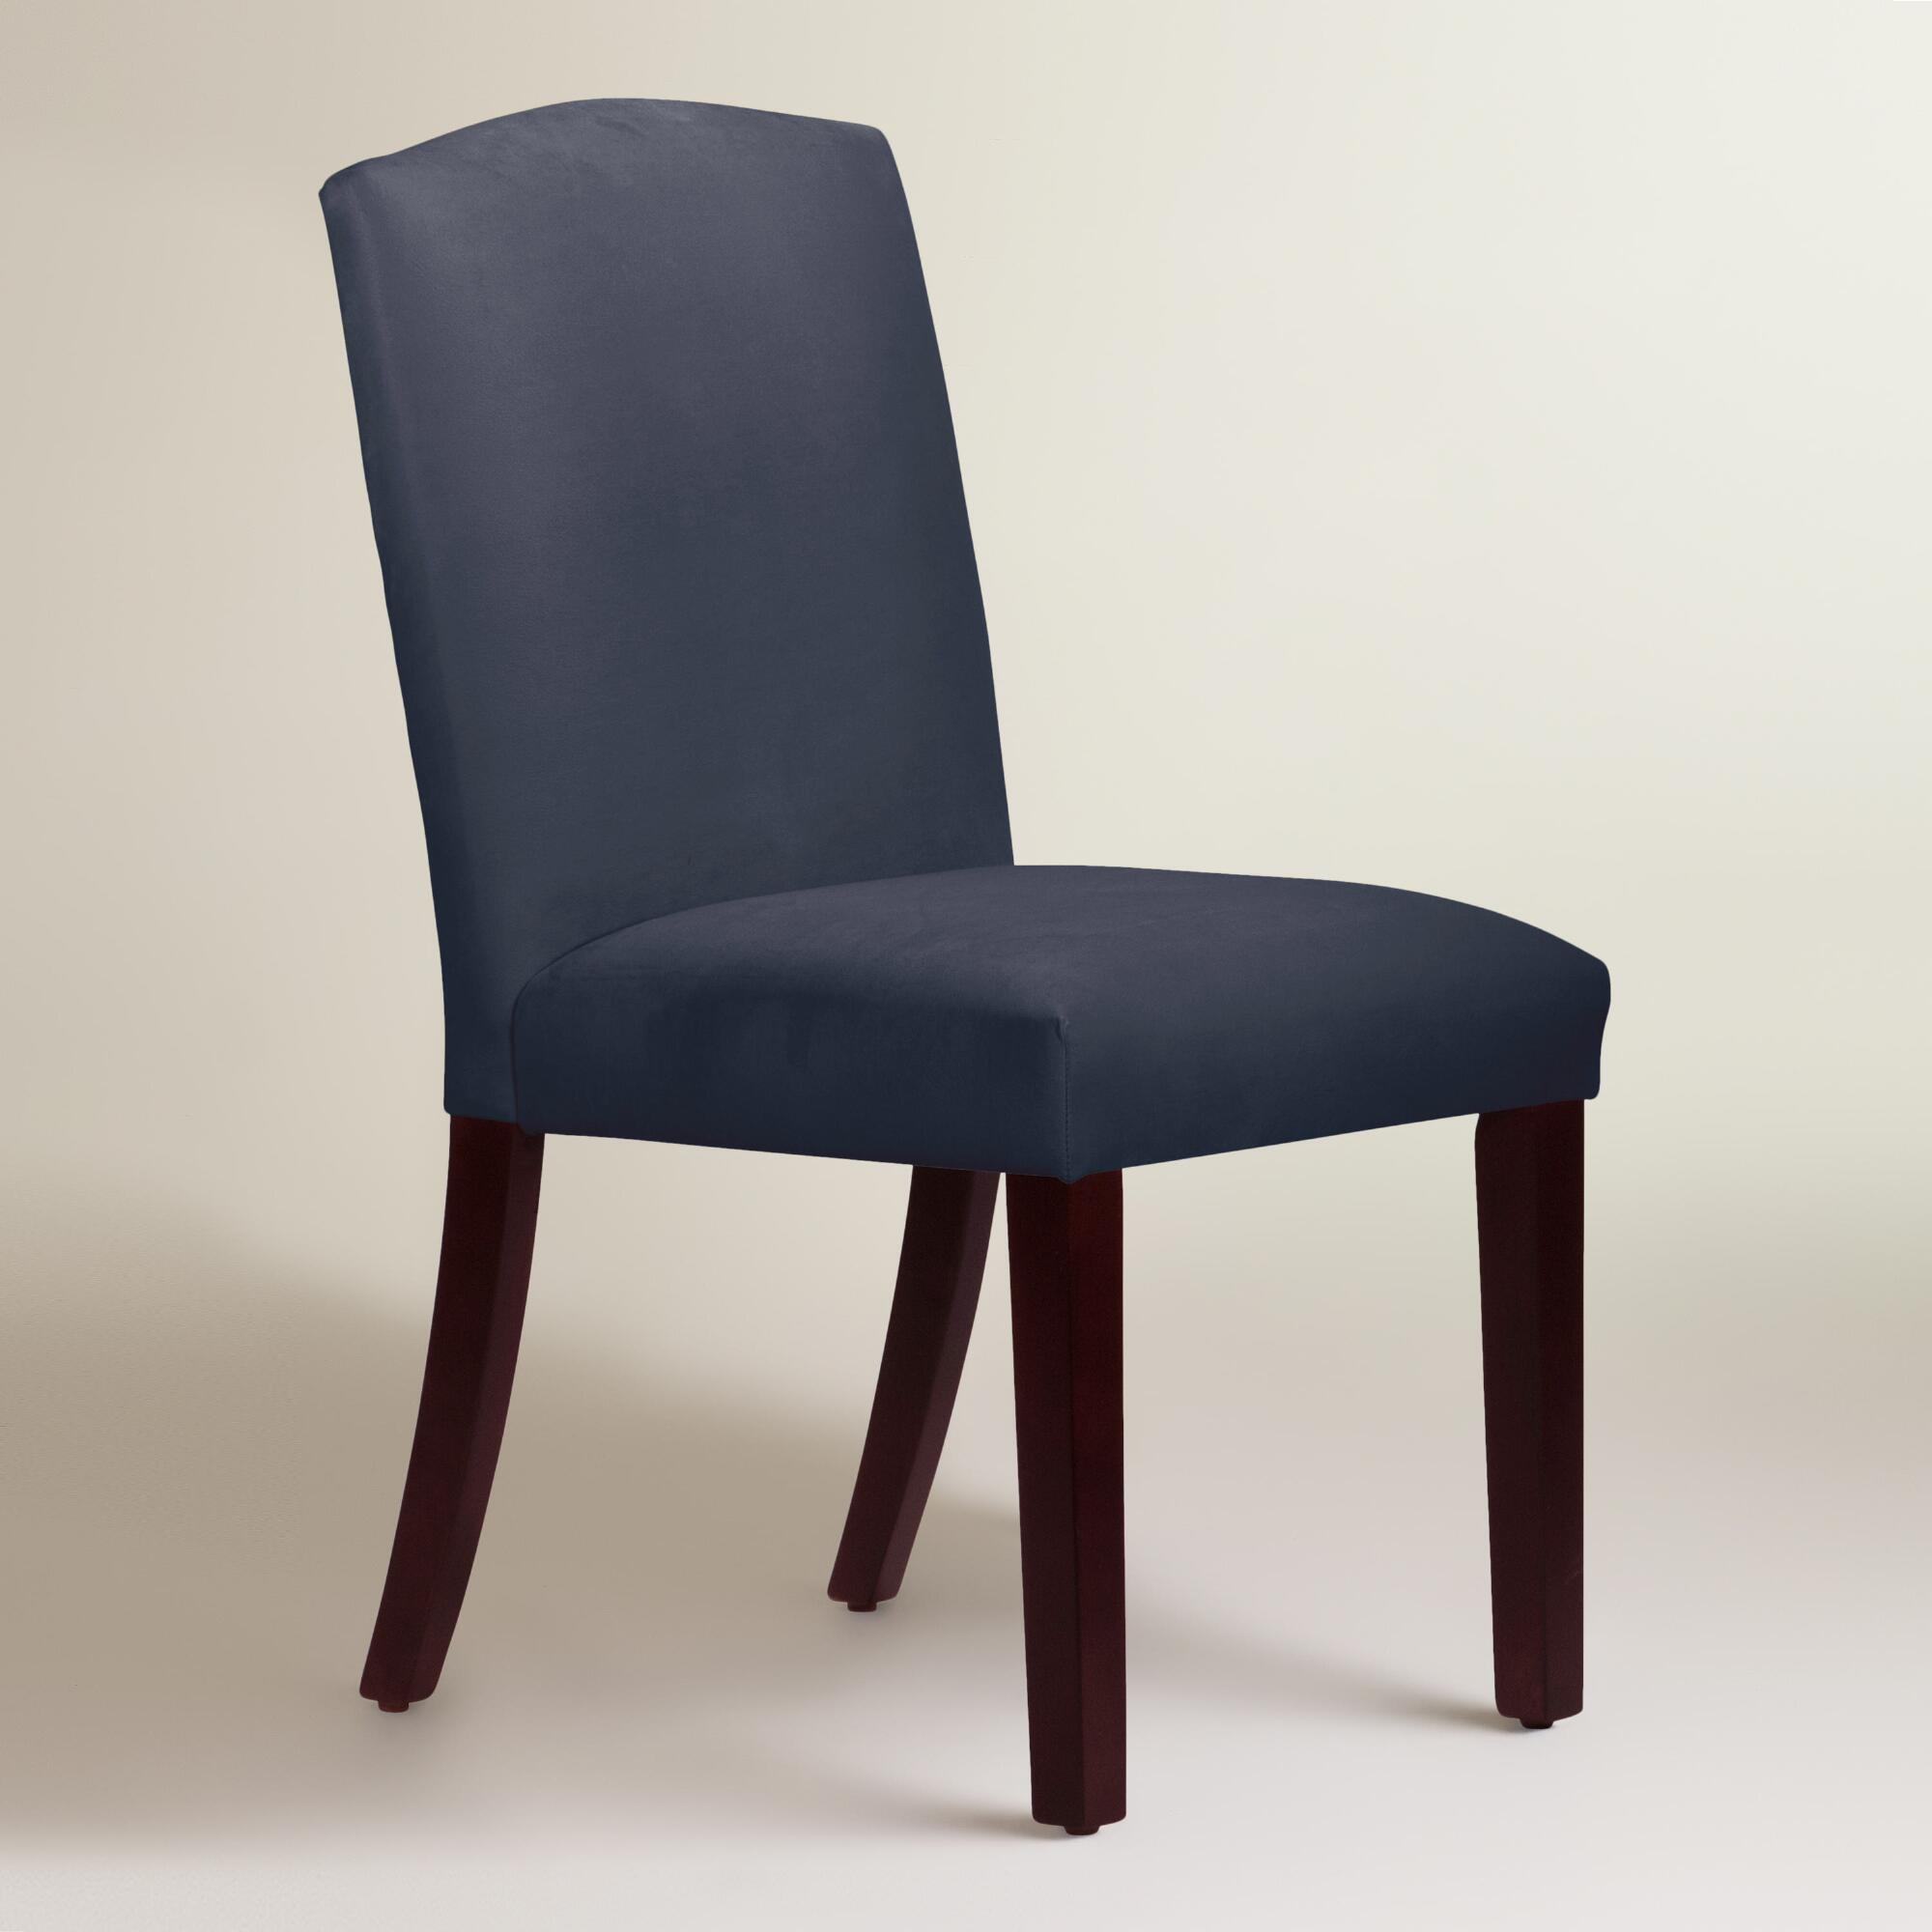 Velvet rena dining chair world market for Dining room velvet chairs